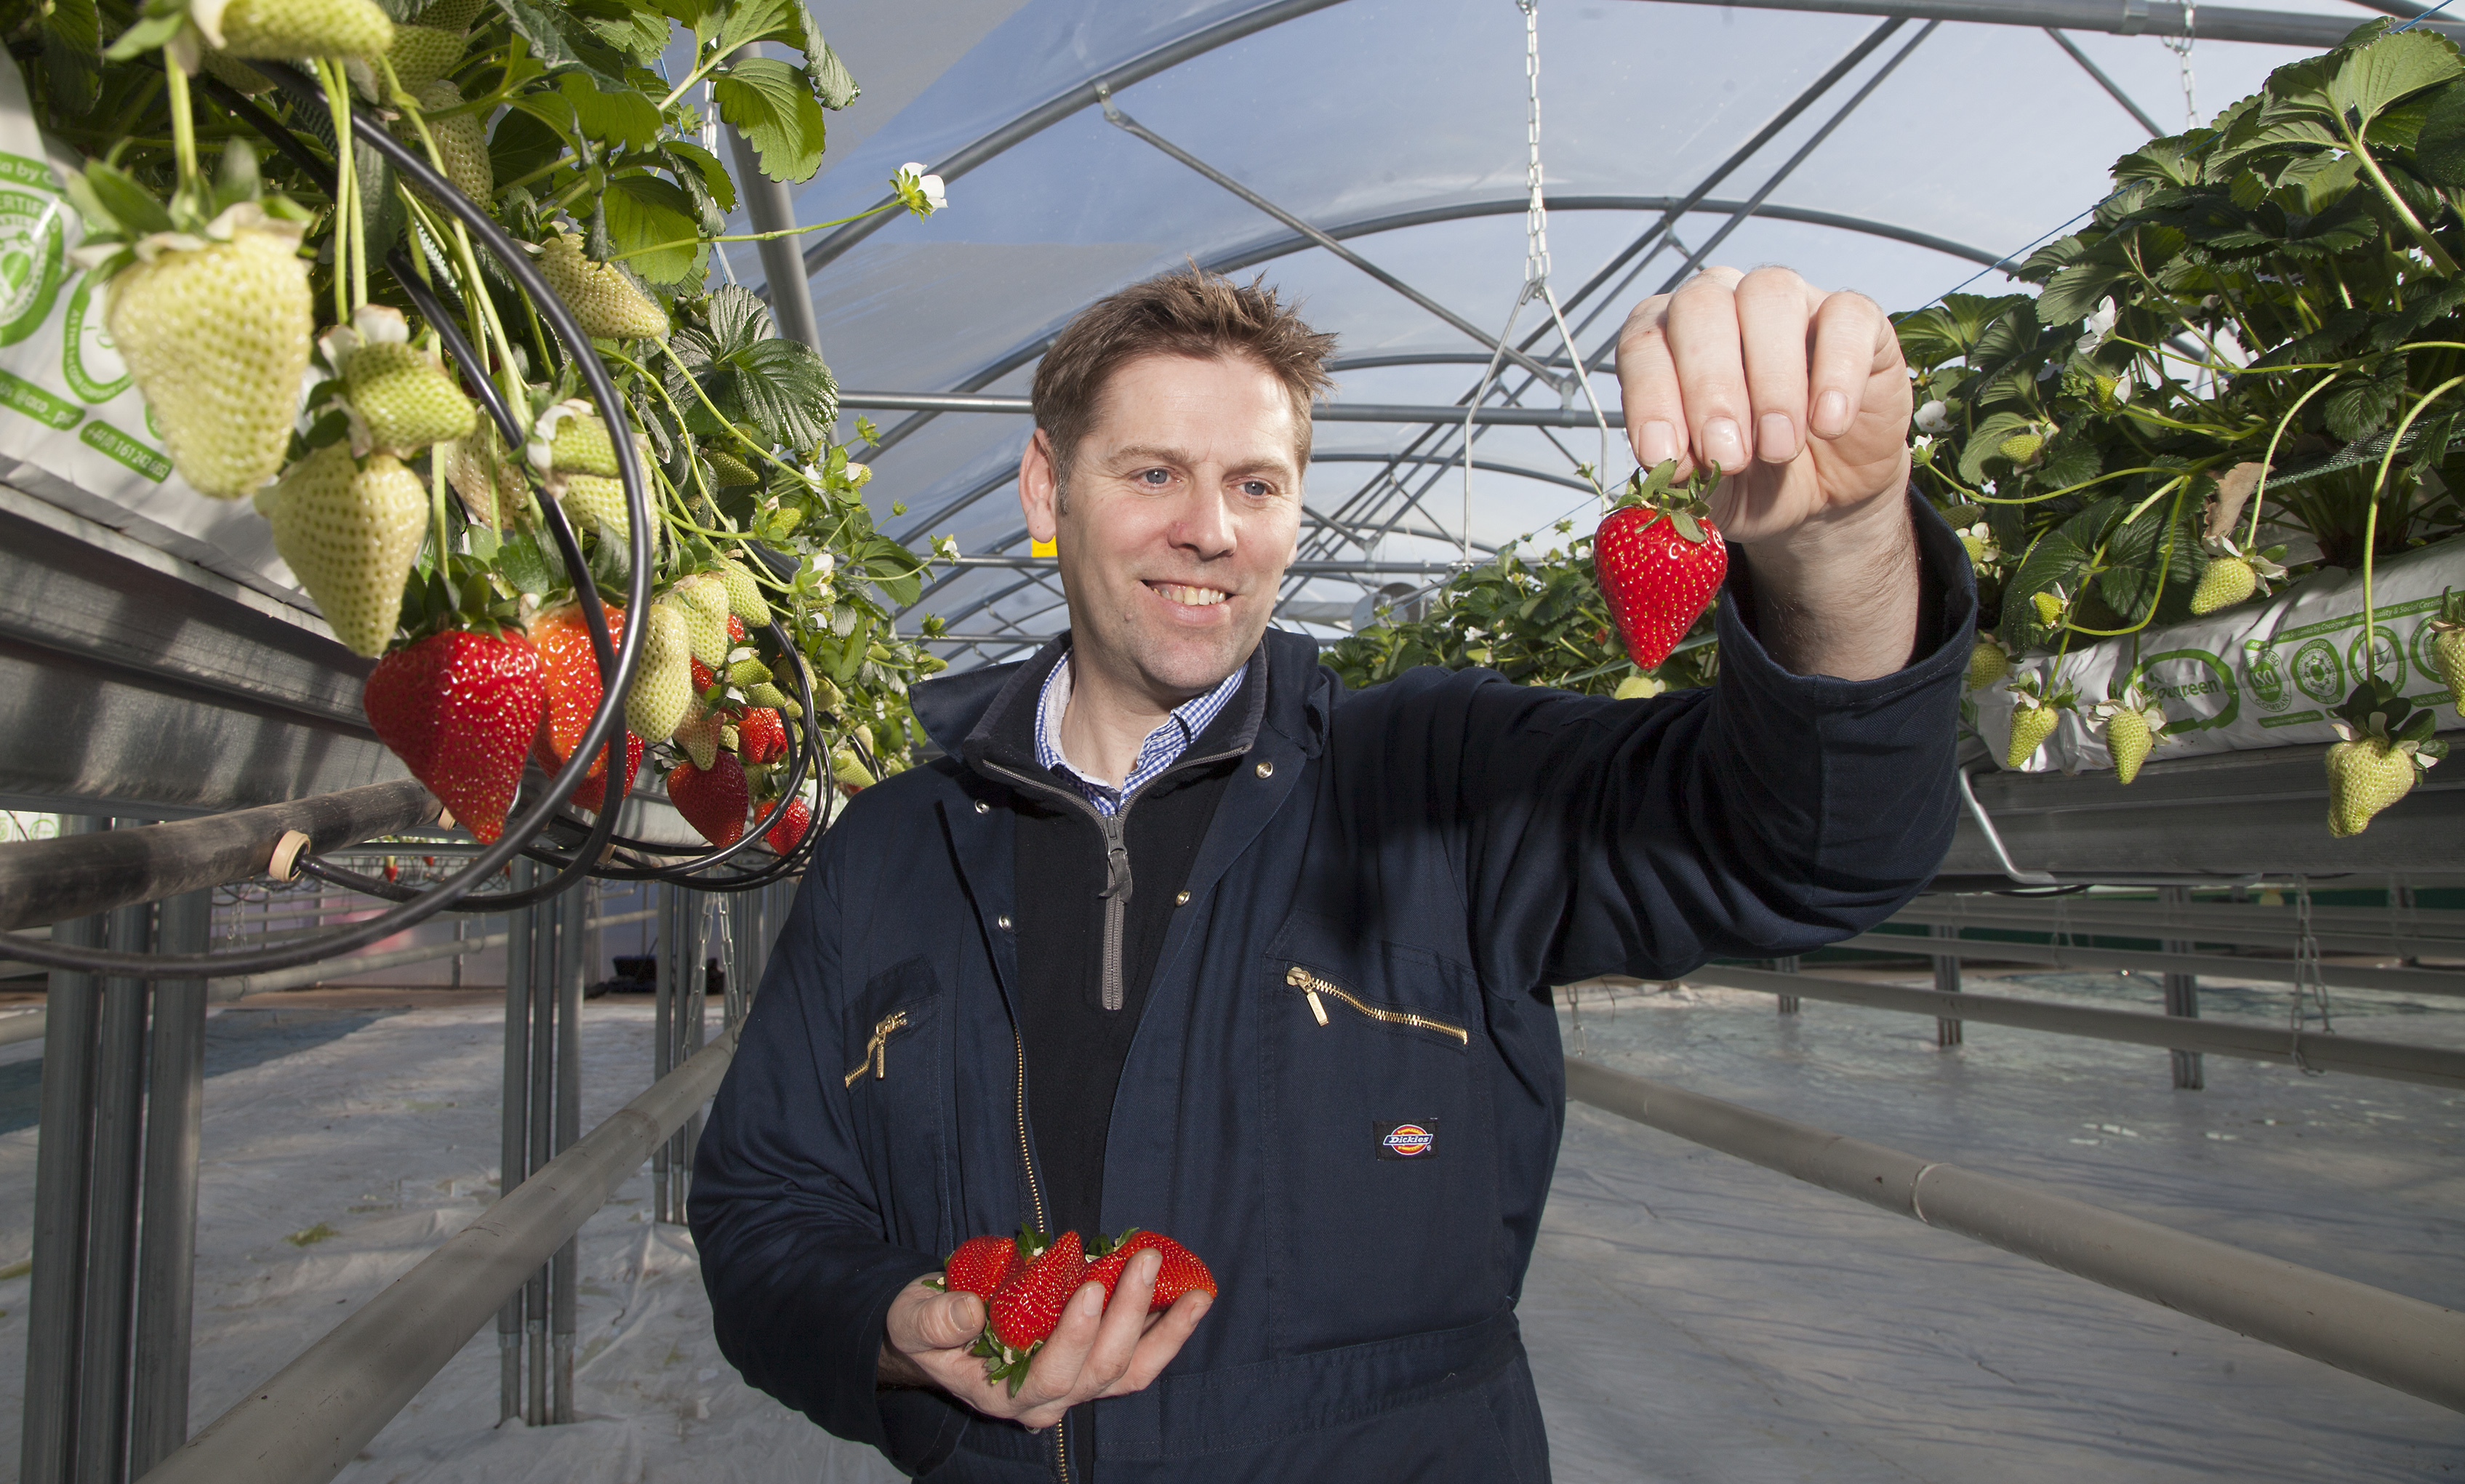 Biomass manager Kenny Shellard hails the early arrival of strawberries in Arbroath.